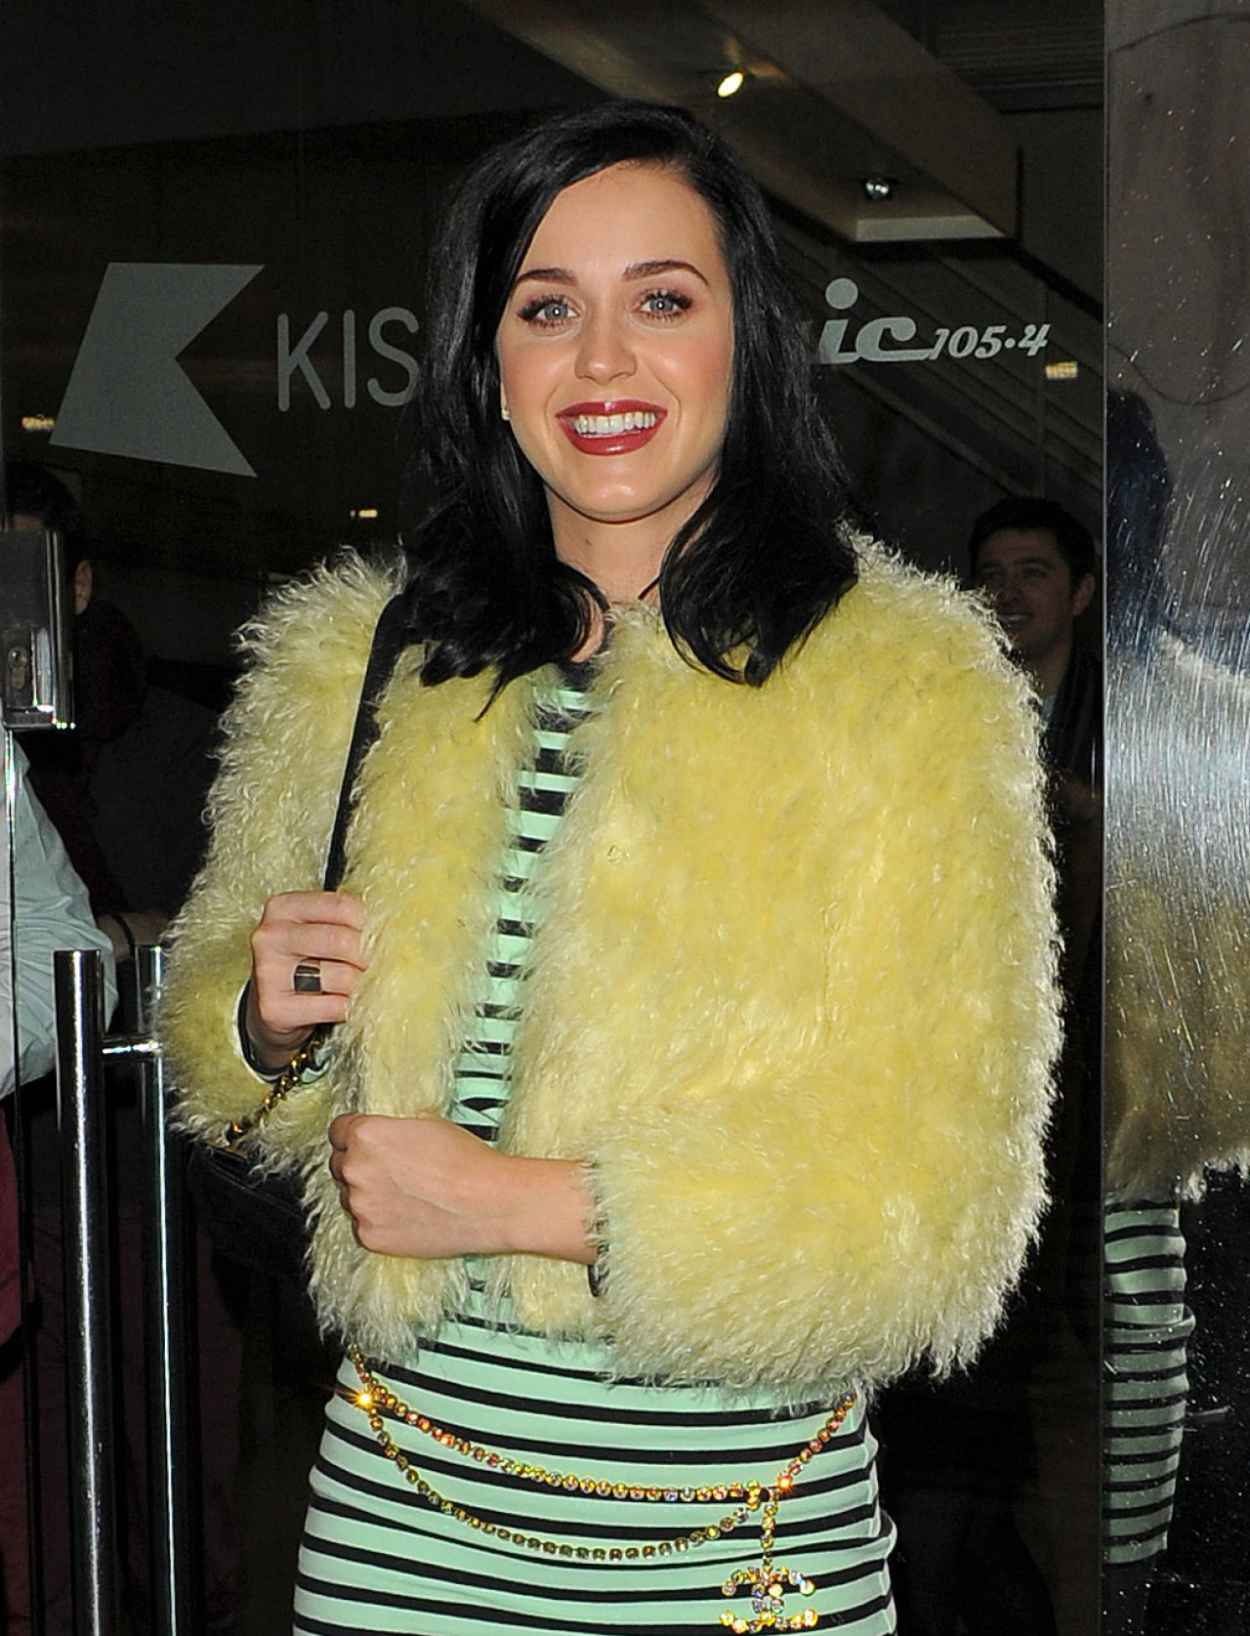 Katy Perry Street Style - Leaving Kiss FM Radio Station in London - December 2015-1